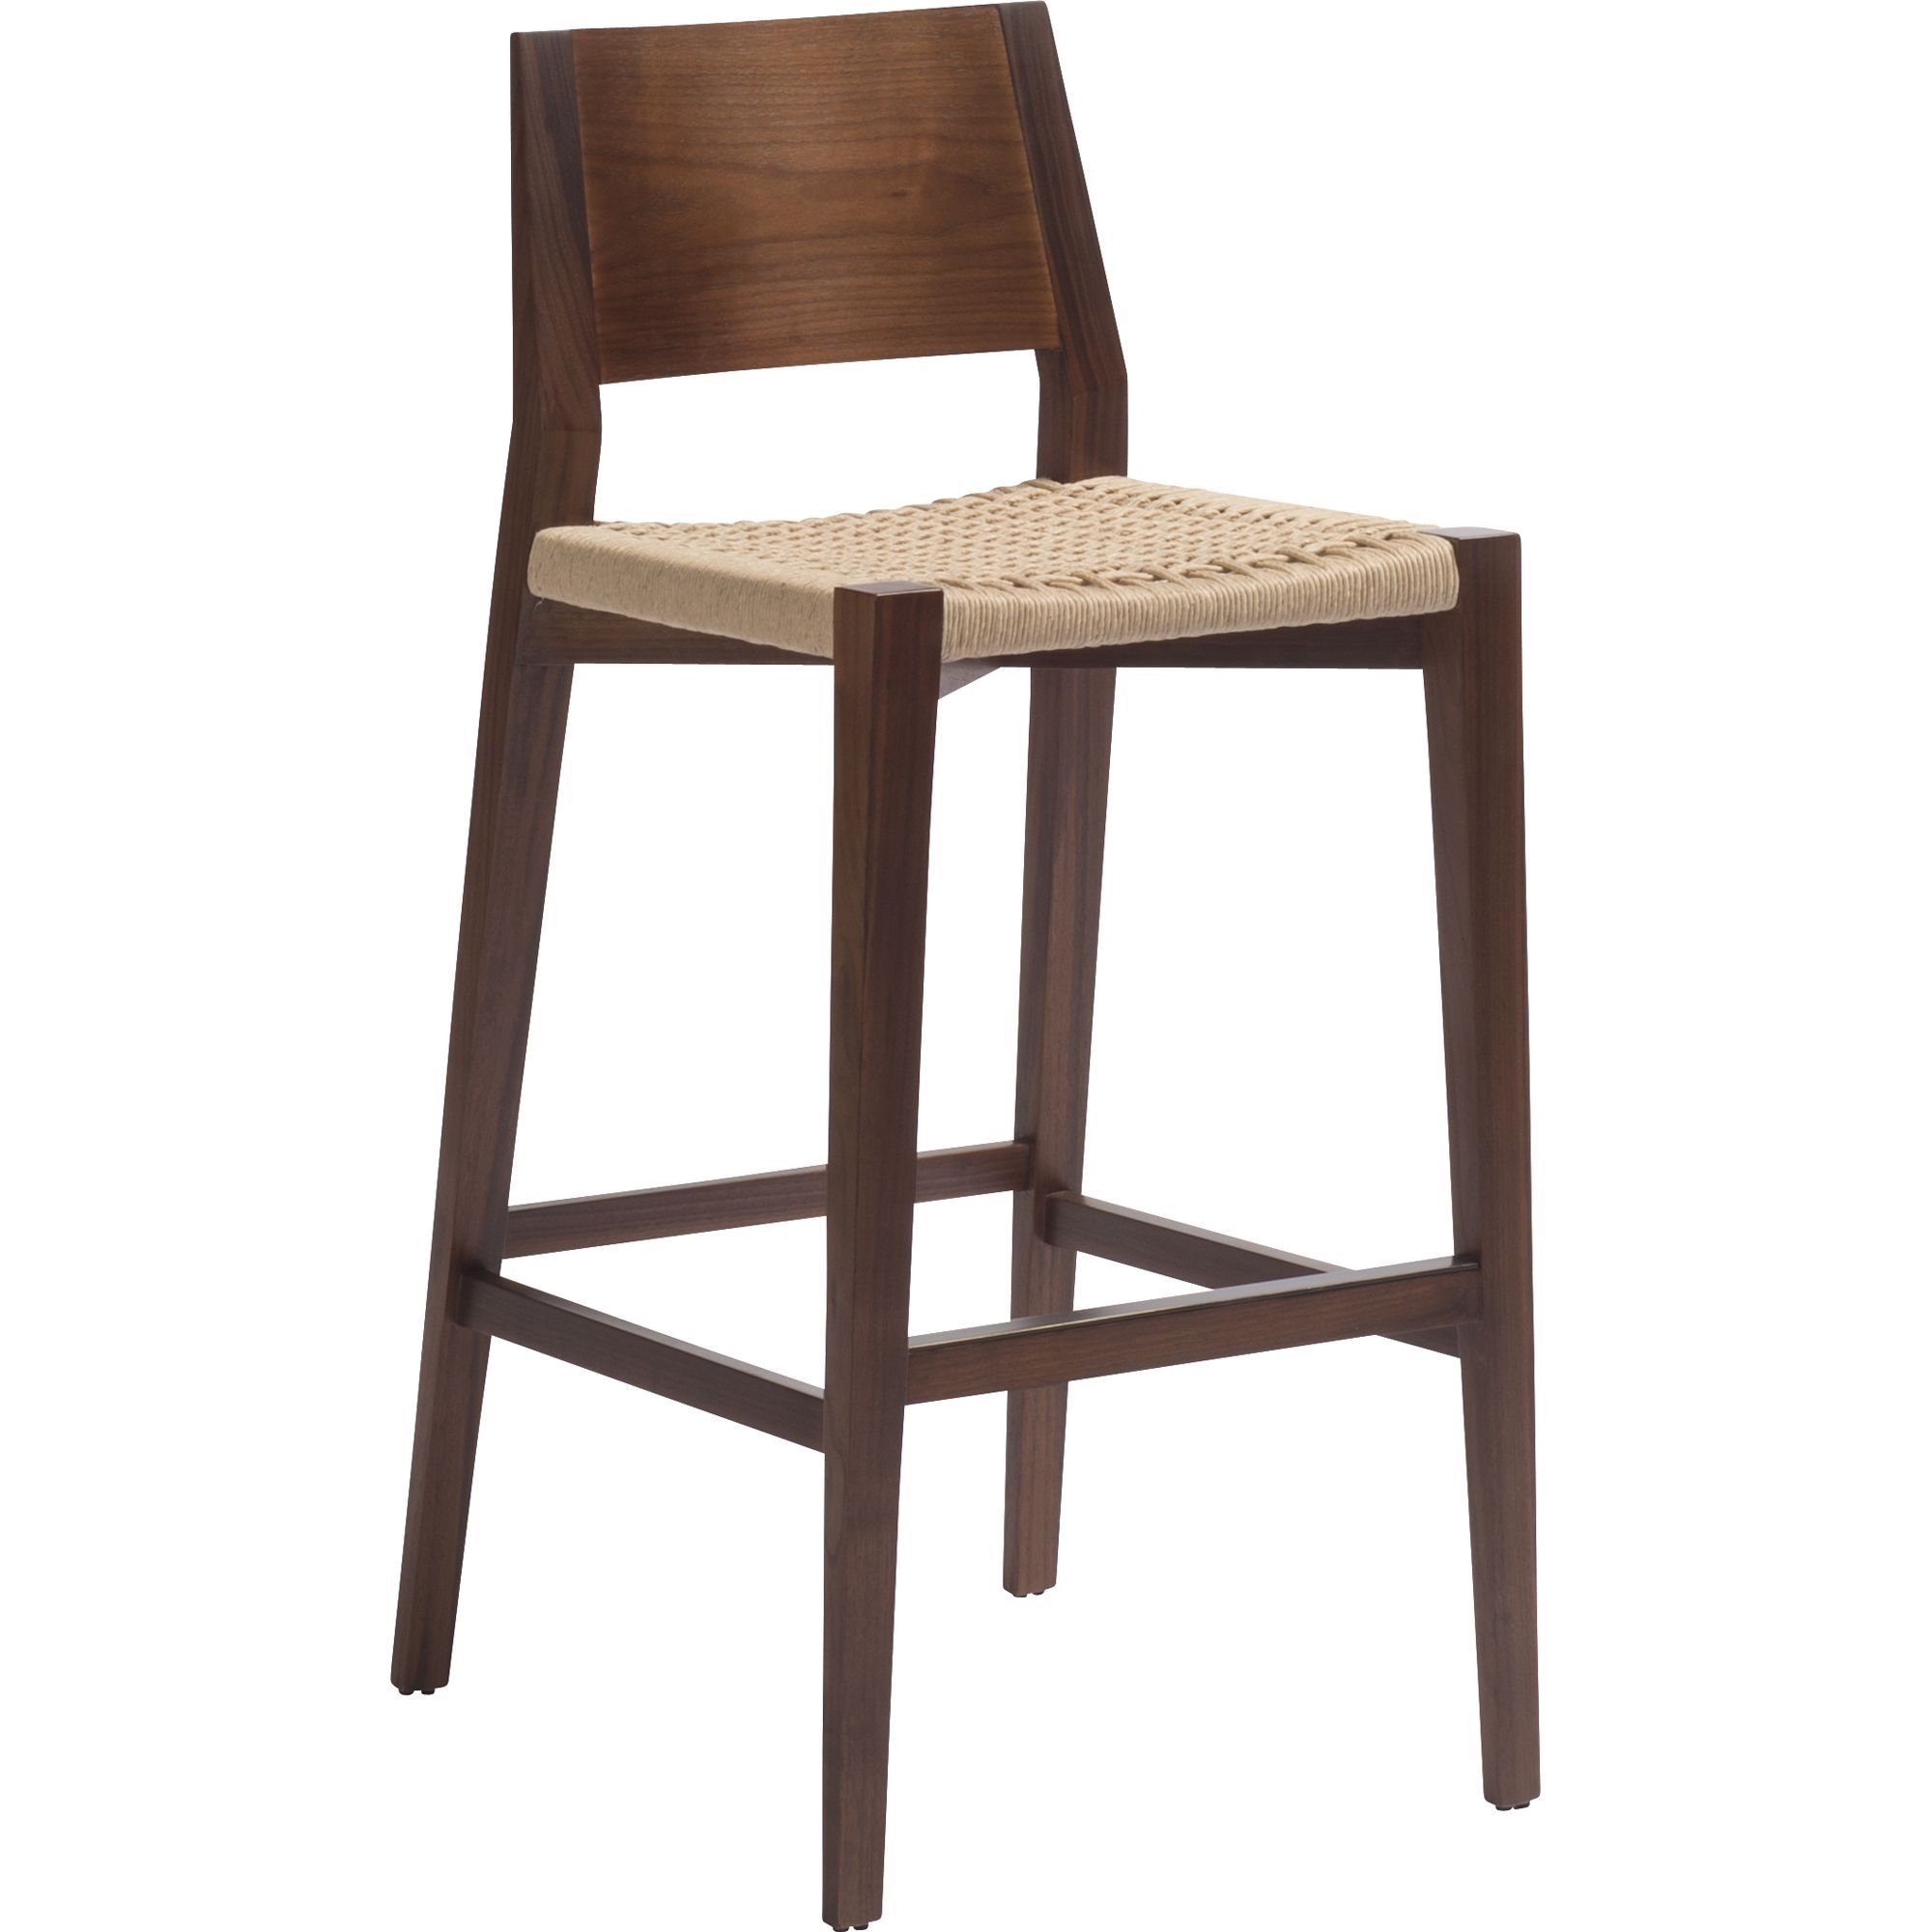 chairs backs inch stool duty counter chrome and arms commercial coast back restaurant metal with bulk stools height leather chair swivel on tags kitchen ideas bar backless heavy barstool discount cheap in wood east furniture